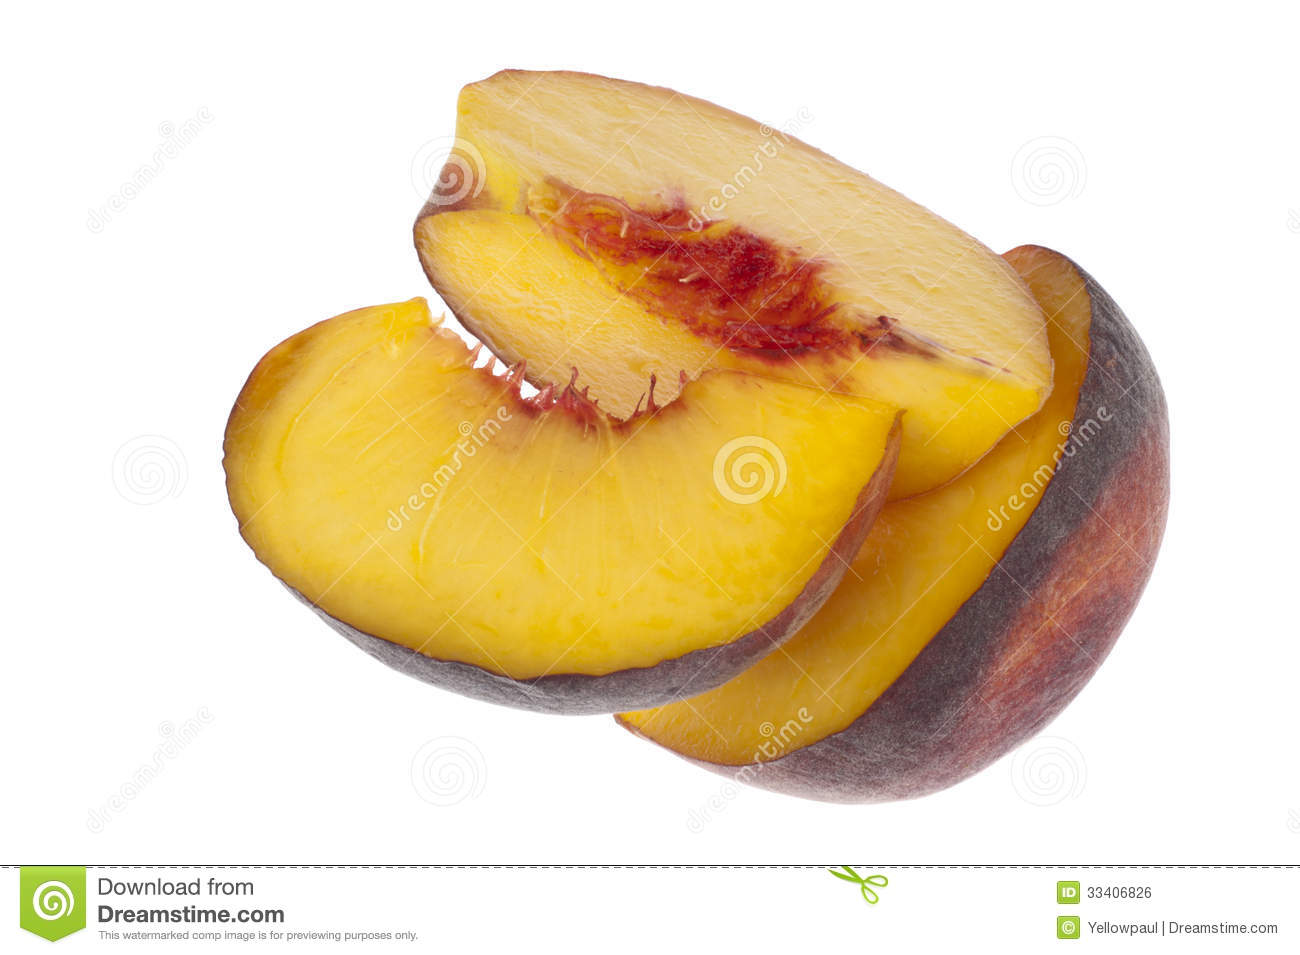 how to cut a peach into slices